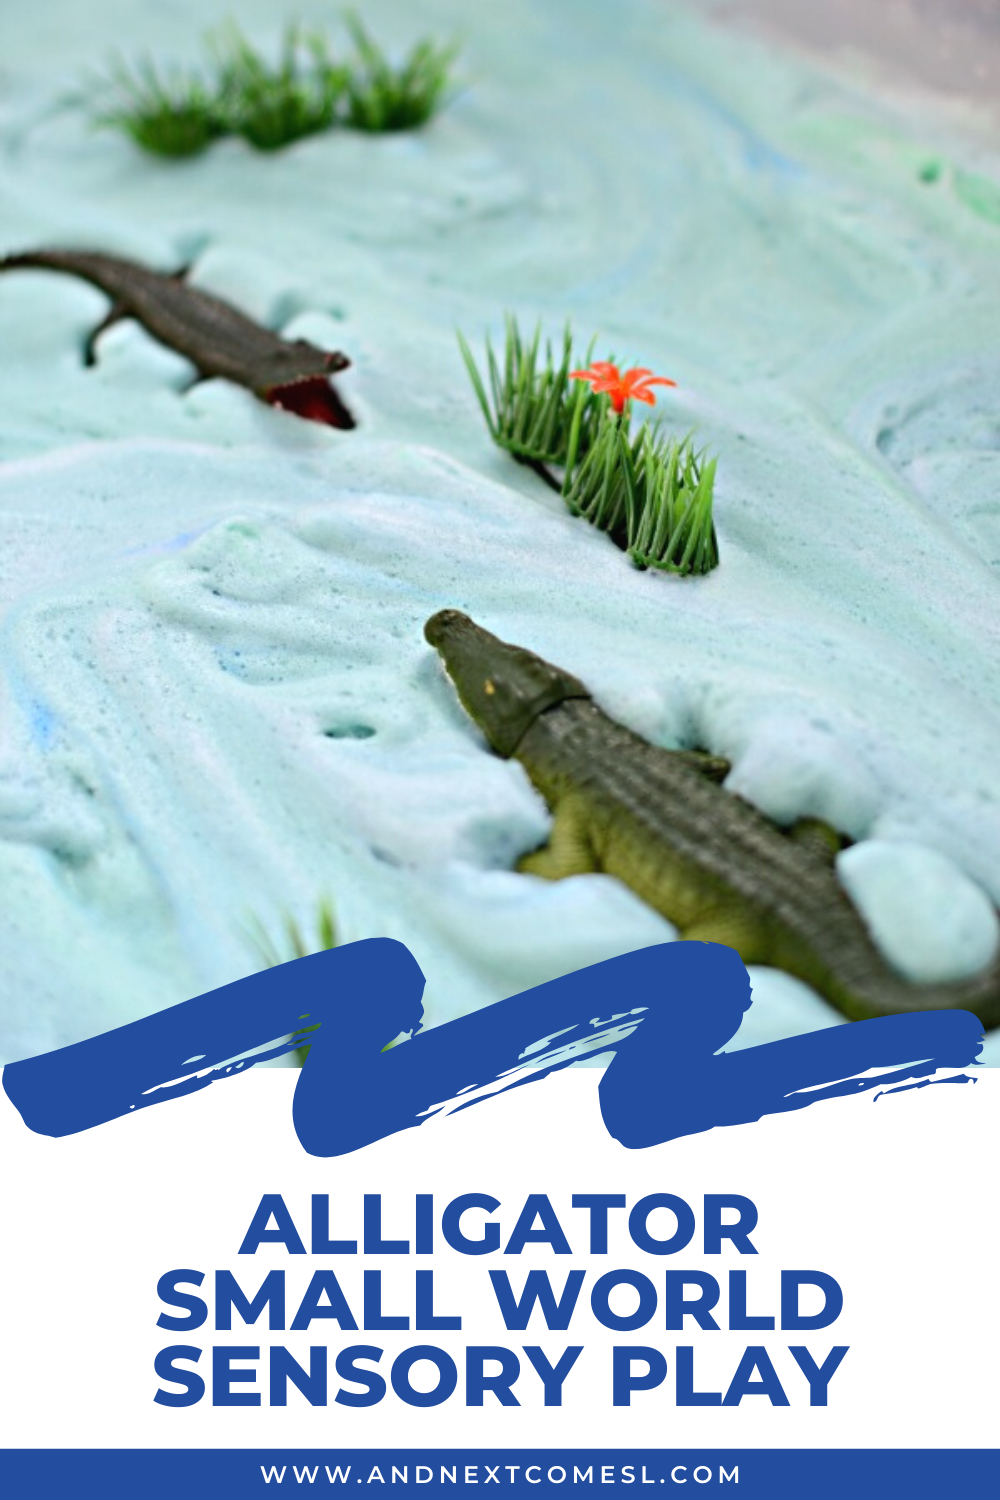 Alligator swamp sensory bin and small world activity for toddlers and preschool kids